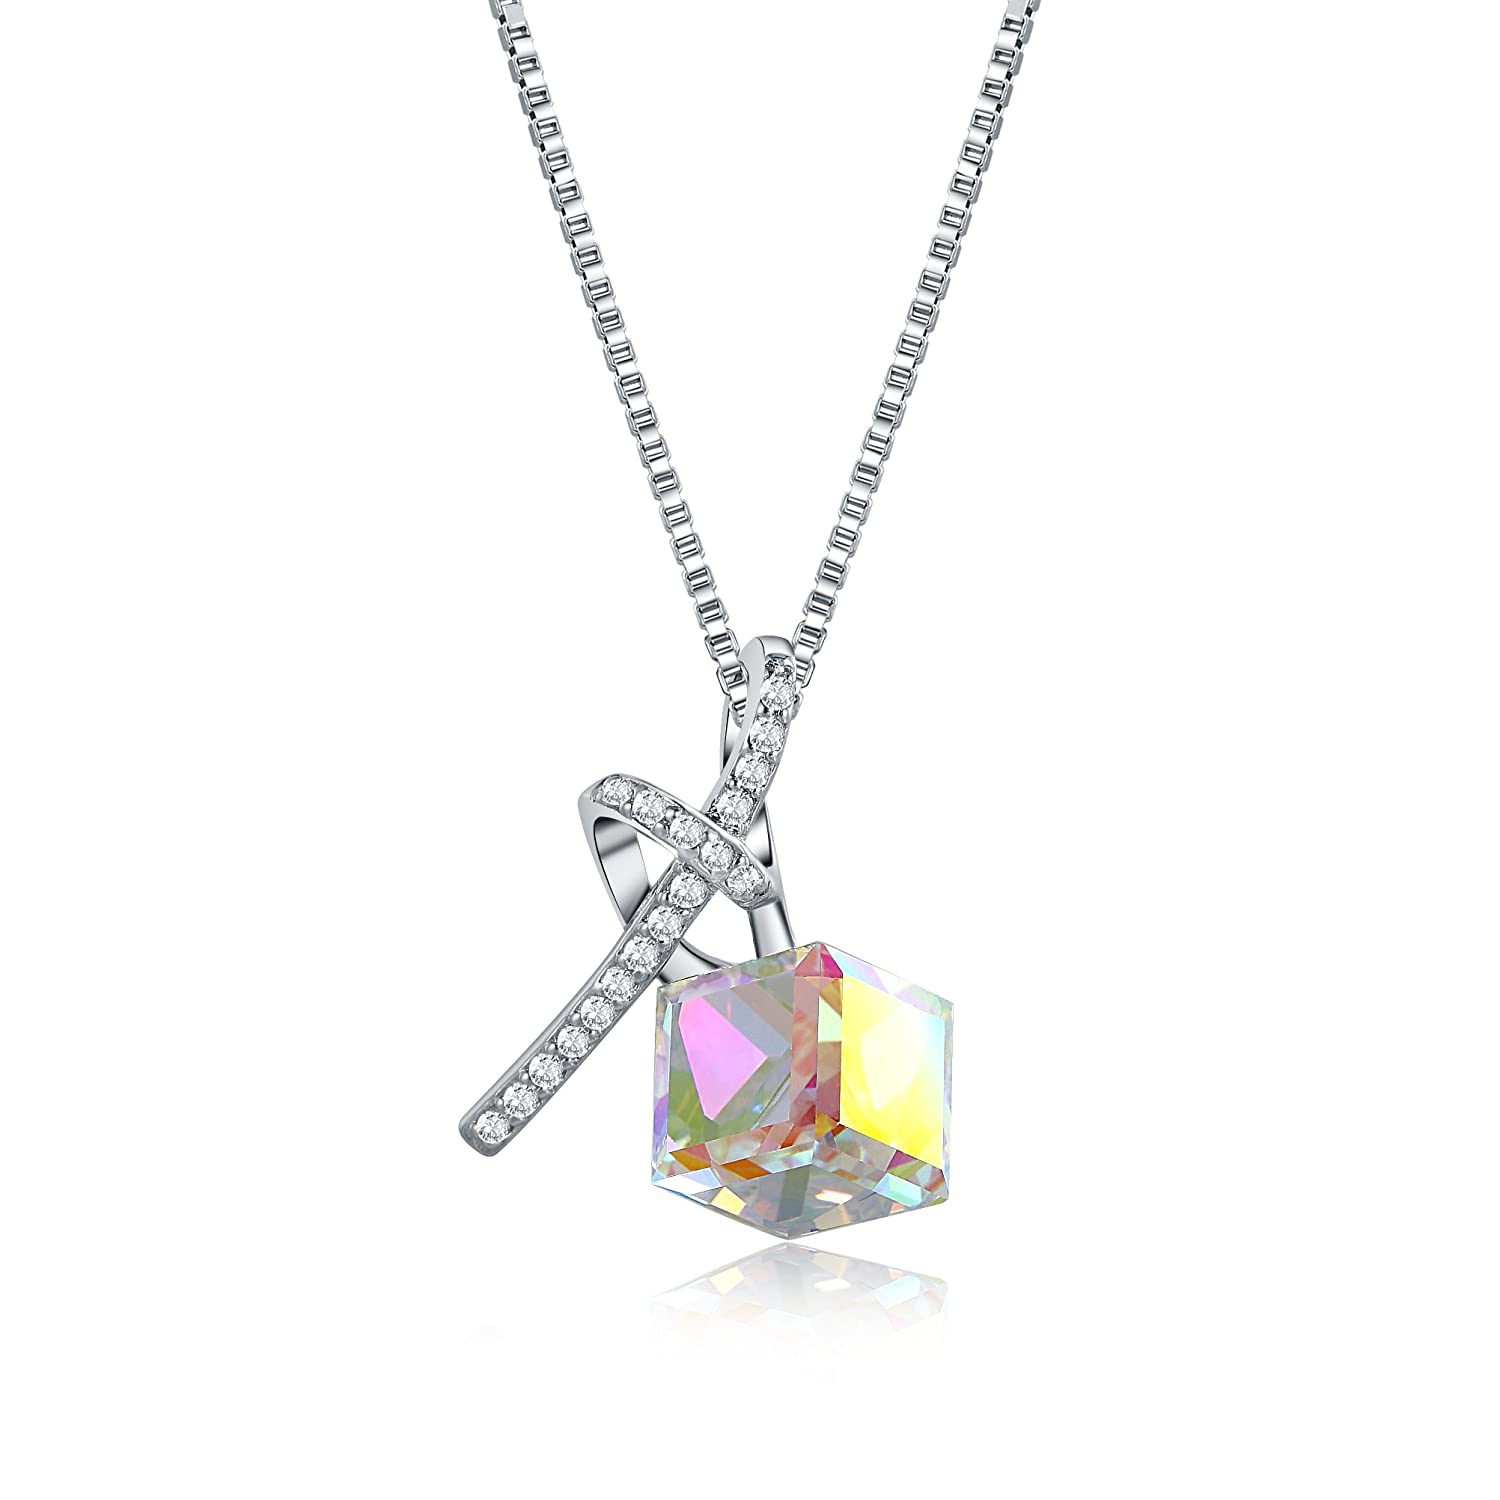 OSIANA Women's Necklace With Swarovski Crystal Color Change Cube Heart Pendant Necklace Fanshion Jewelry